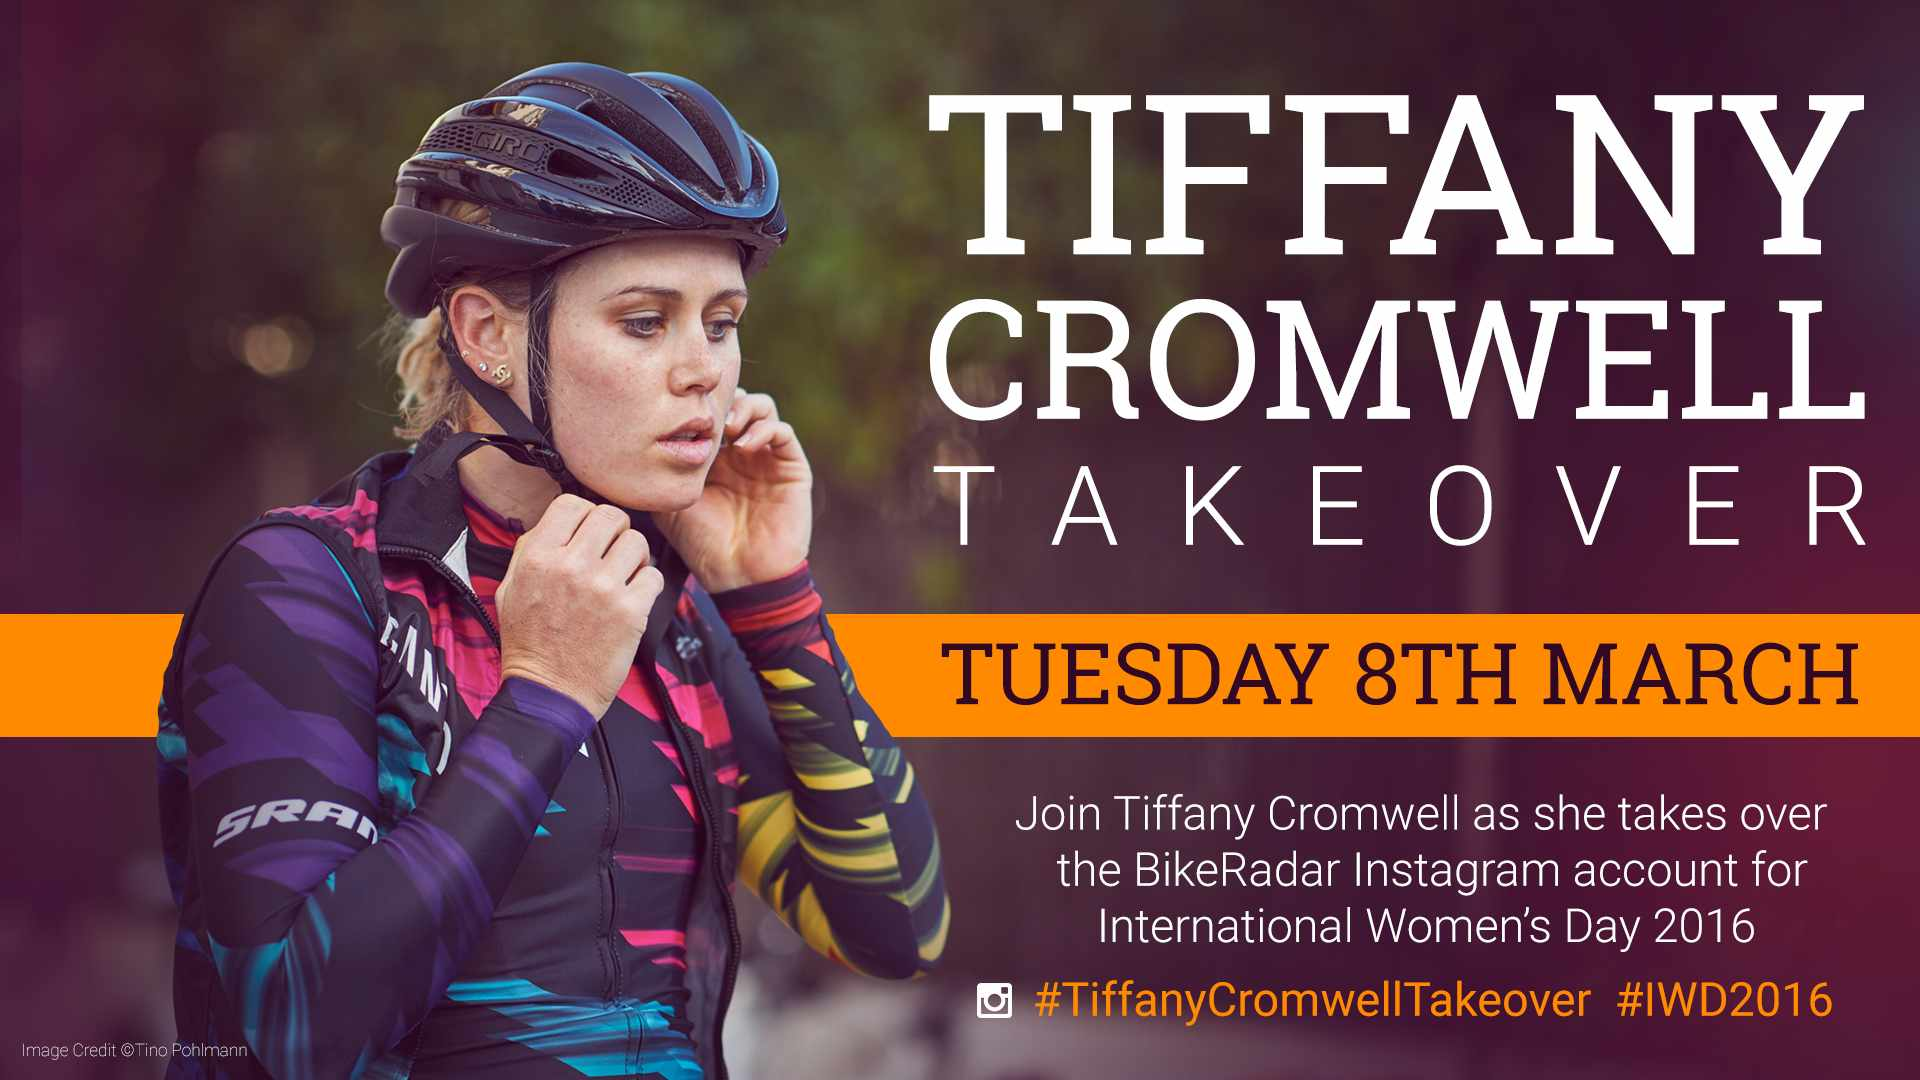 Tiffany Cromwell takes over the BikeRadar Instagram account for International Women's Day on Tuesday 8 March